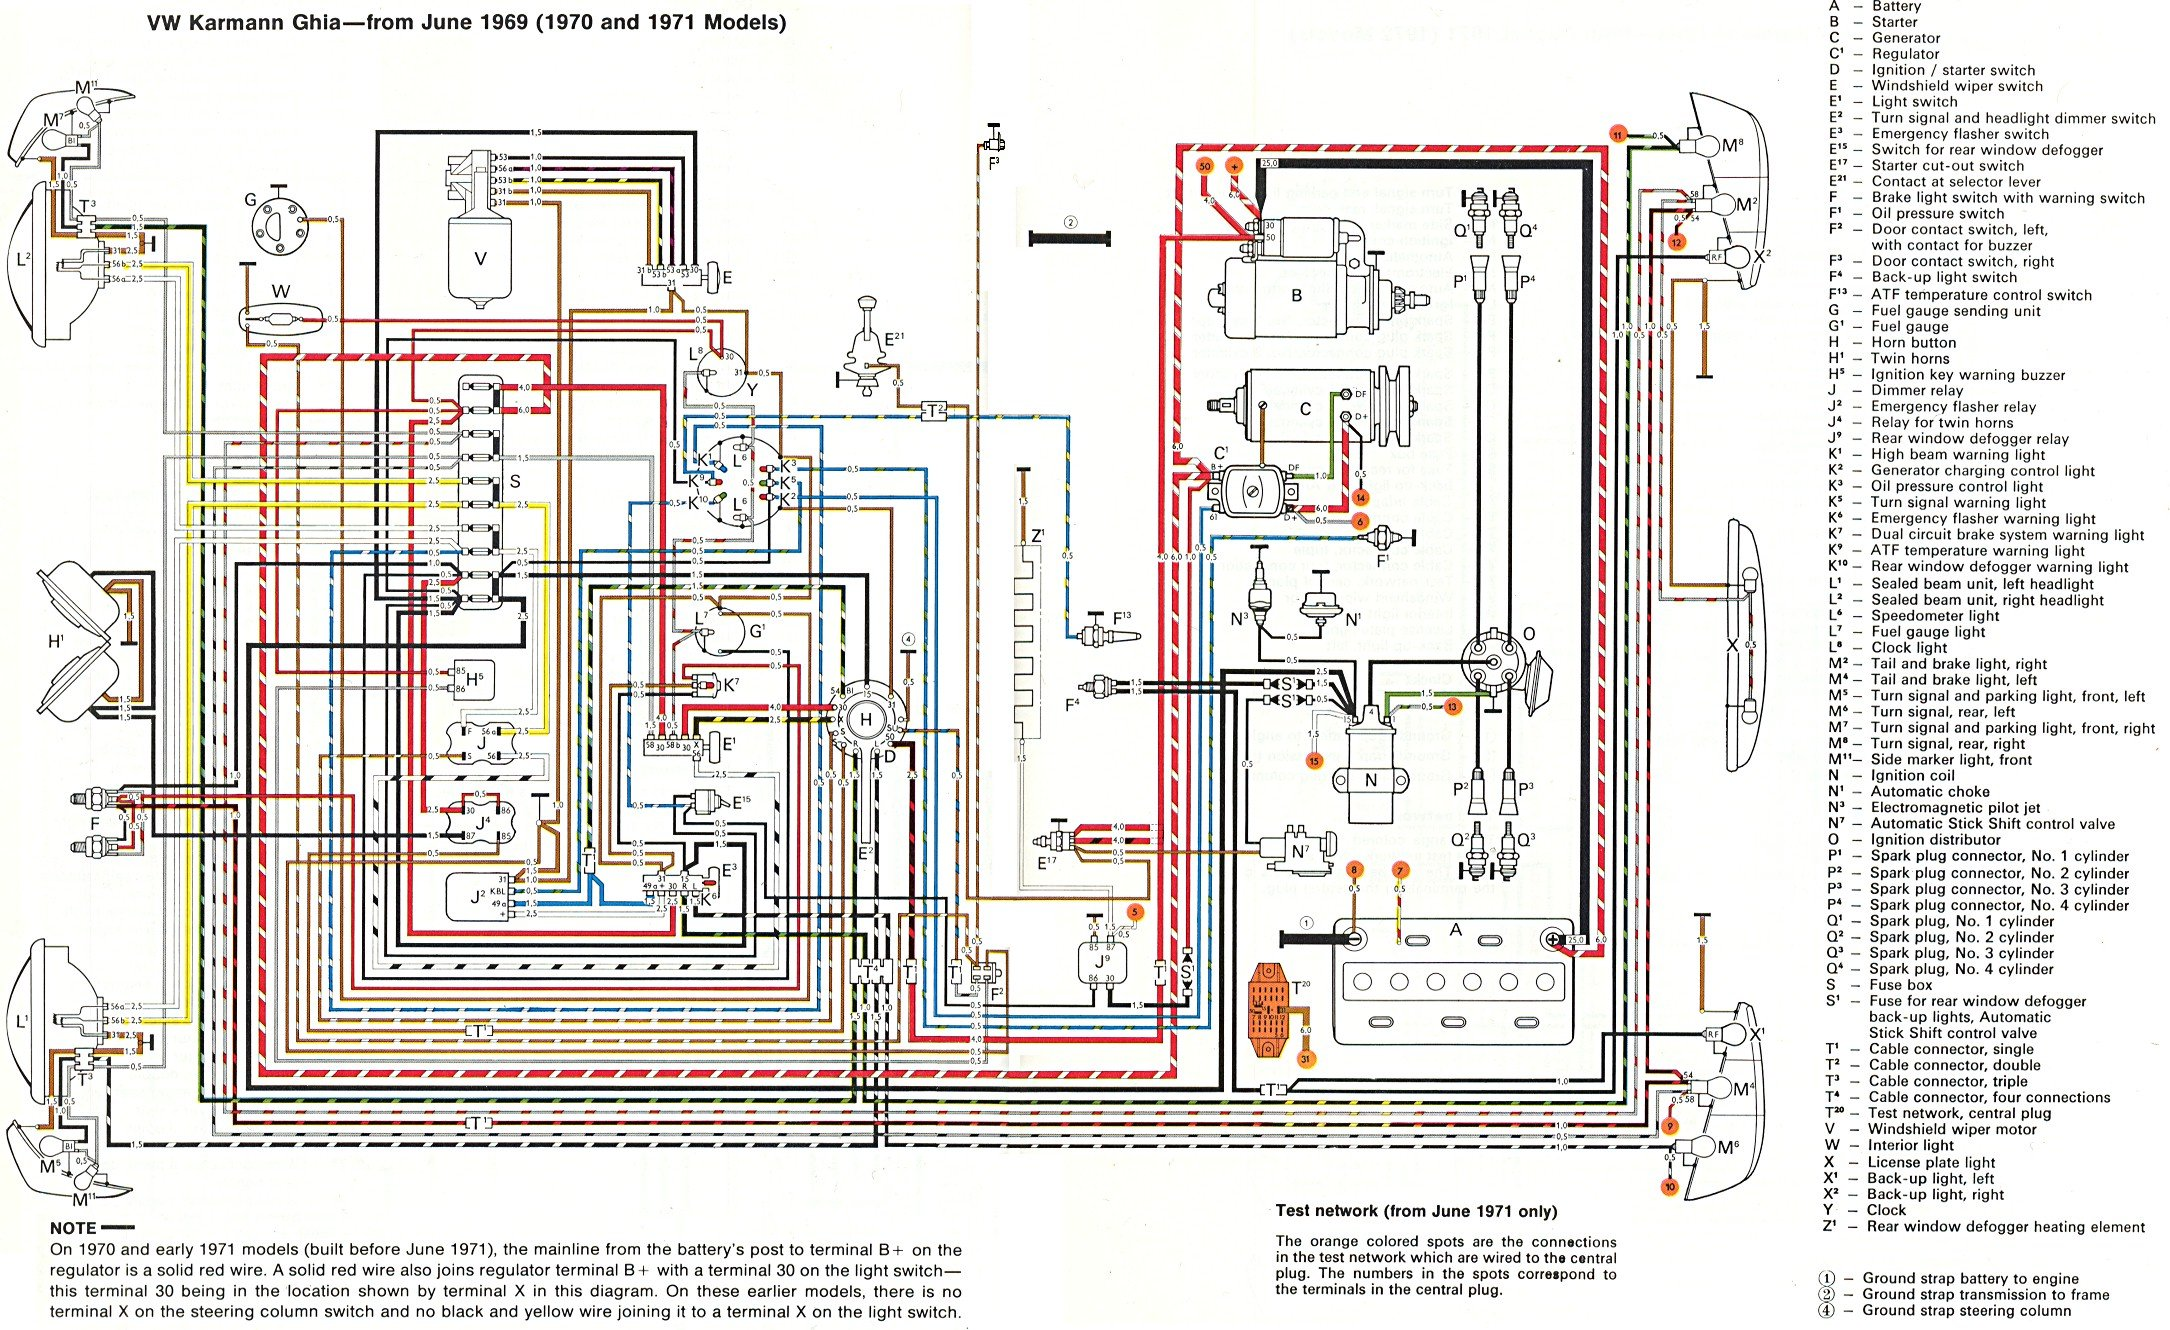 Wiring Schematic For 1970 Gto Judge List Of Circuit Thesamba Com Karmann Ghia Diagrams Rh